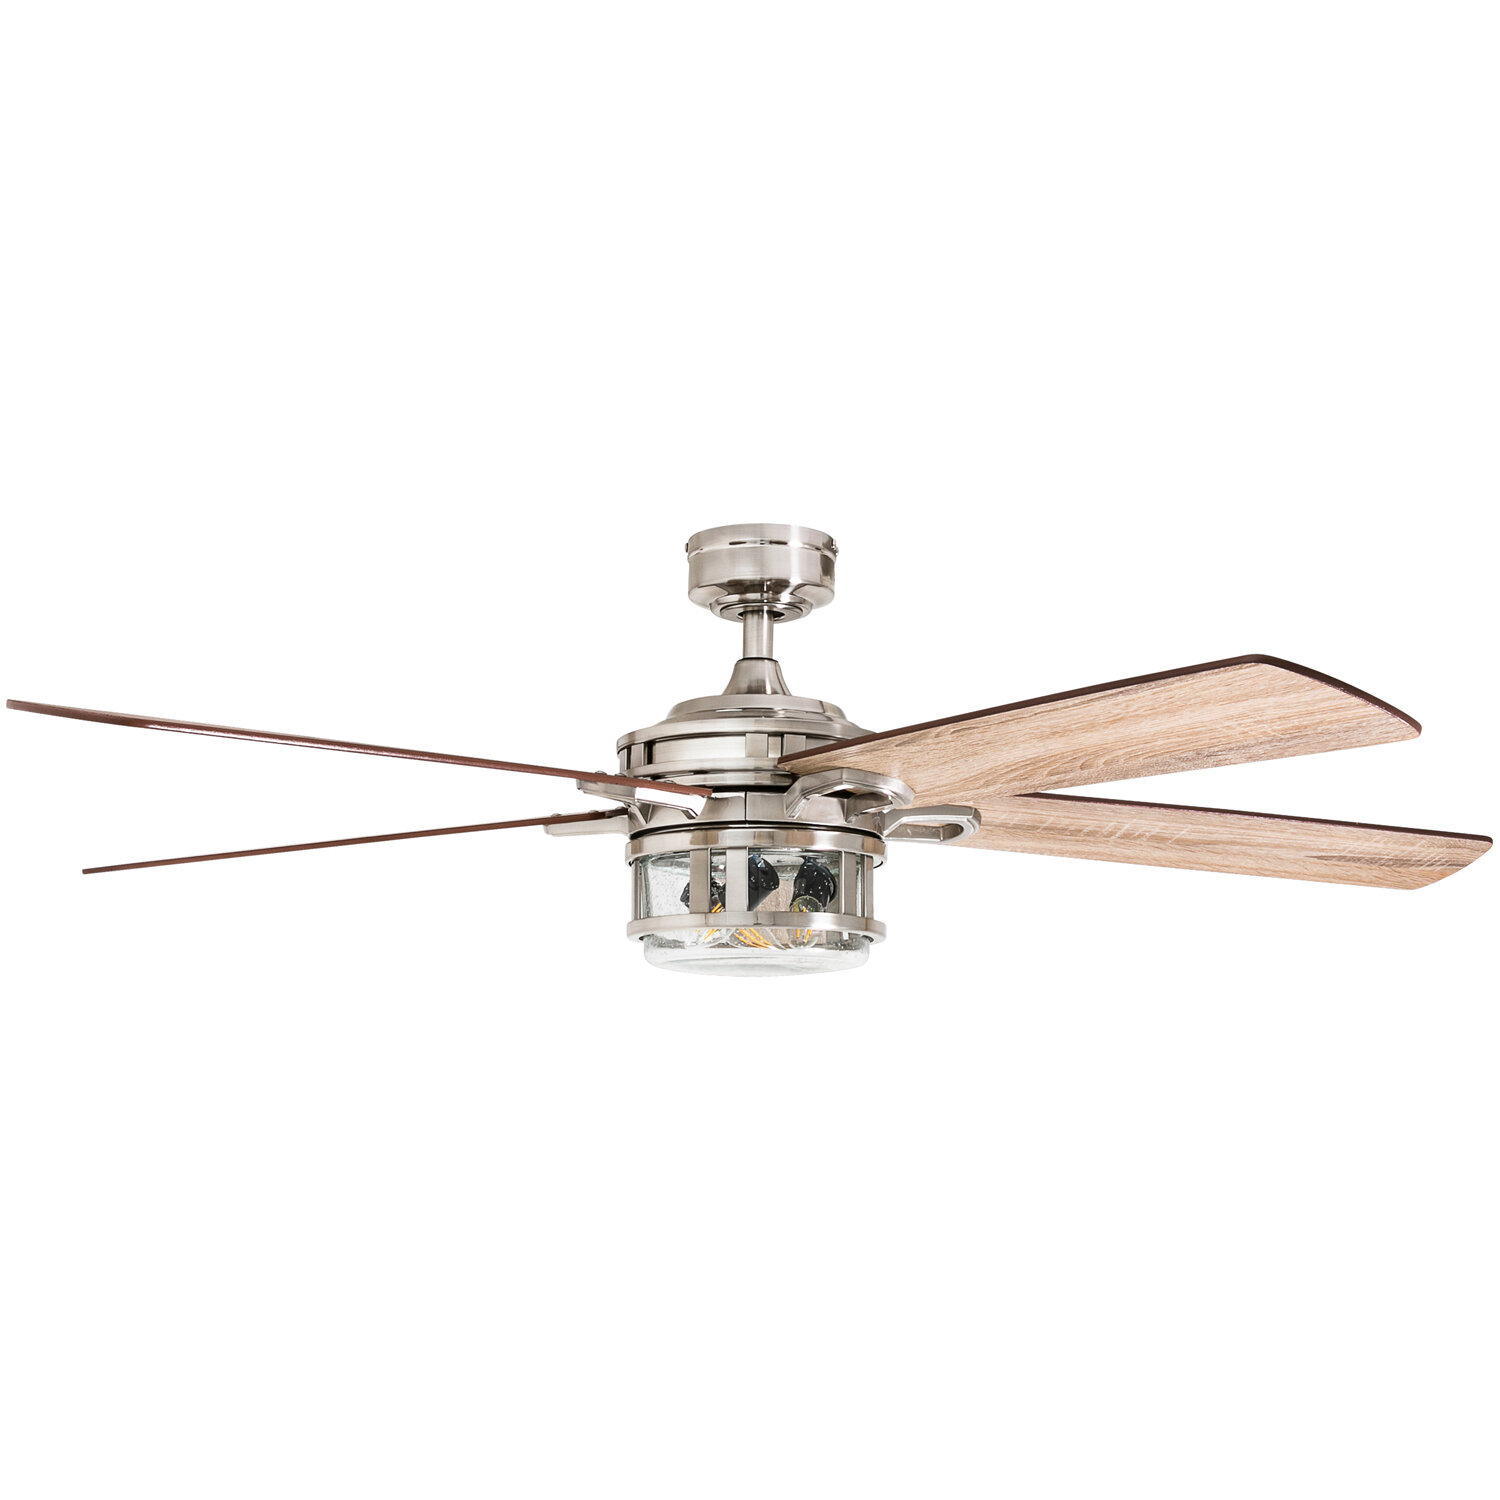 Ceiling Fan With Light And Remote Azspringtrainingexperience